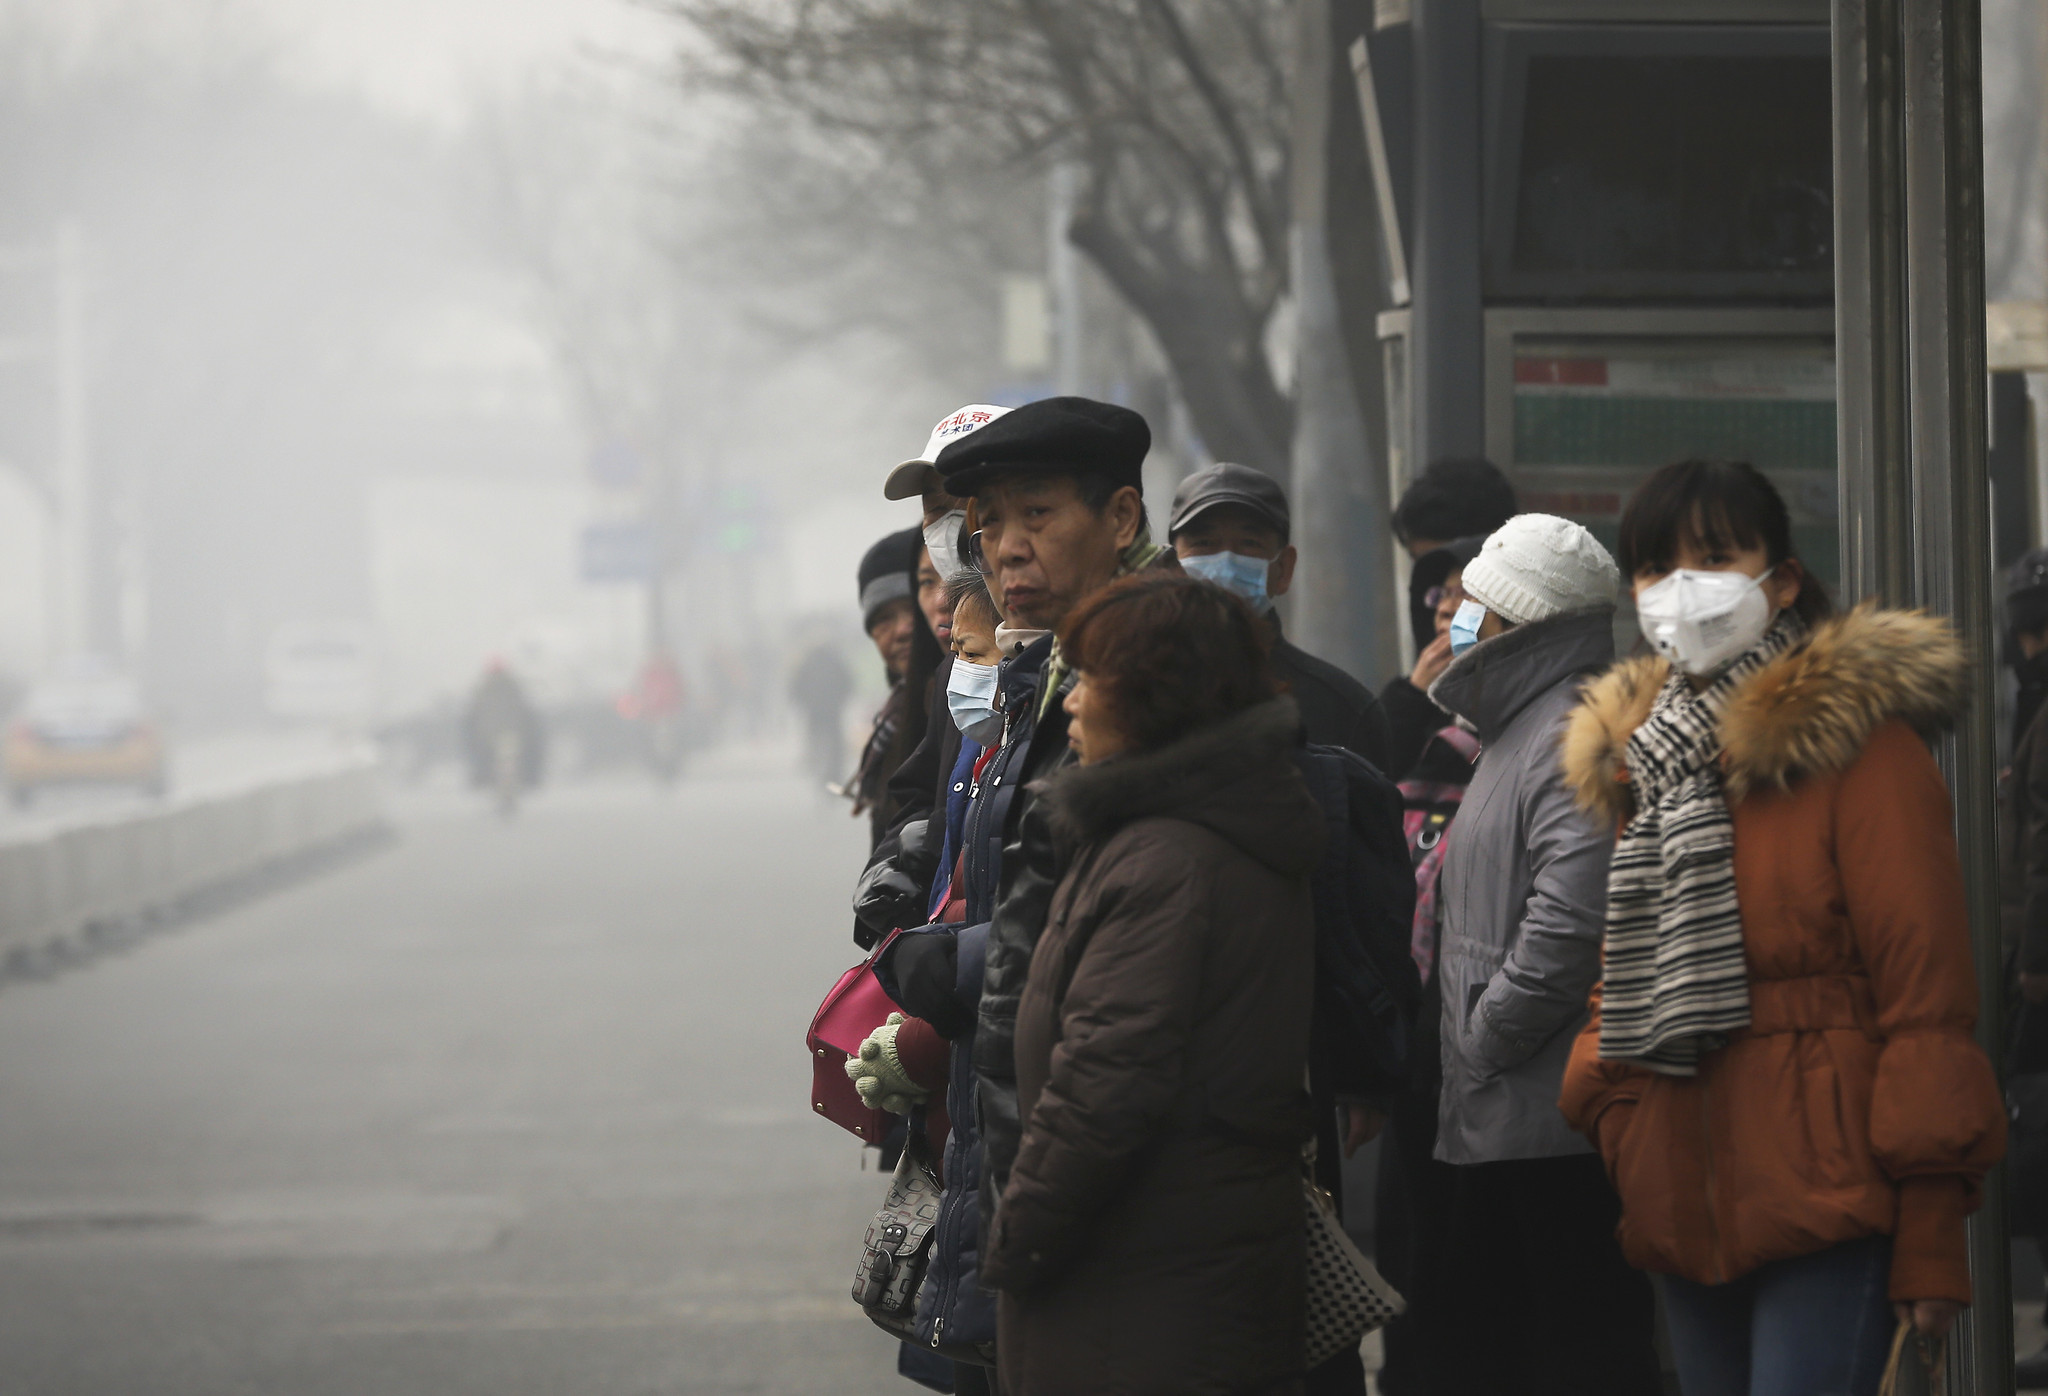 beijing chokes on offthecharts air pollution as thick